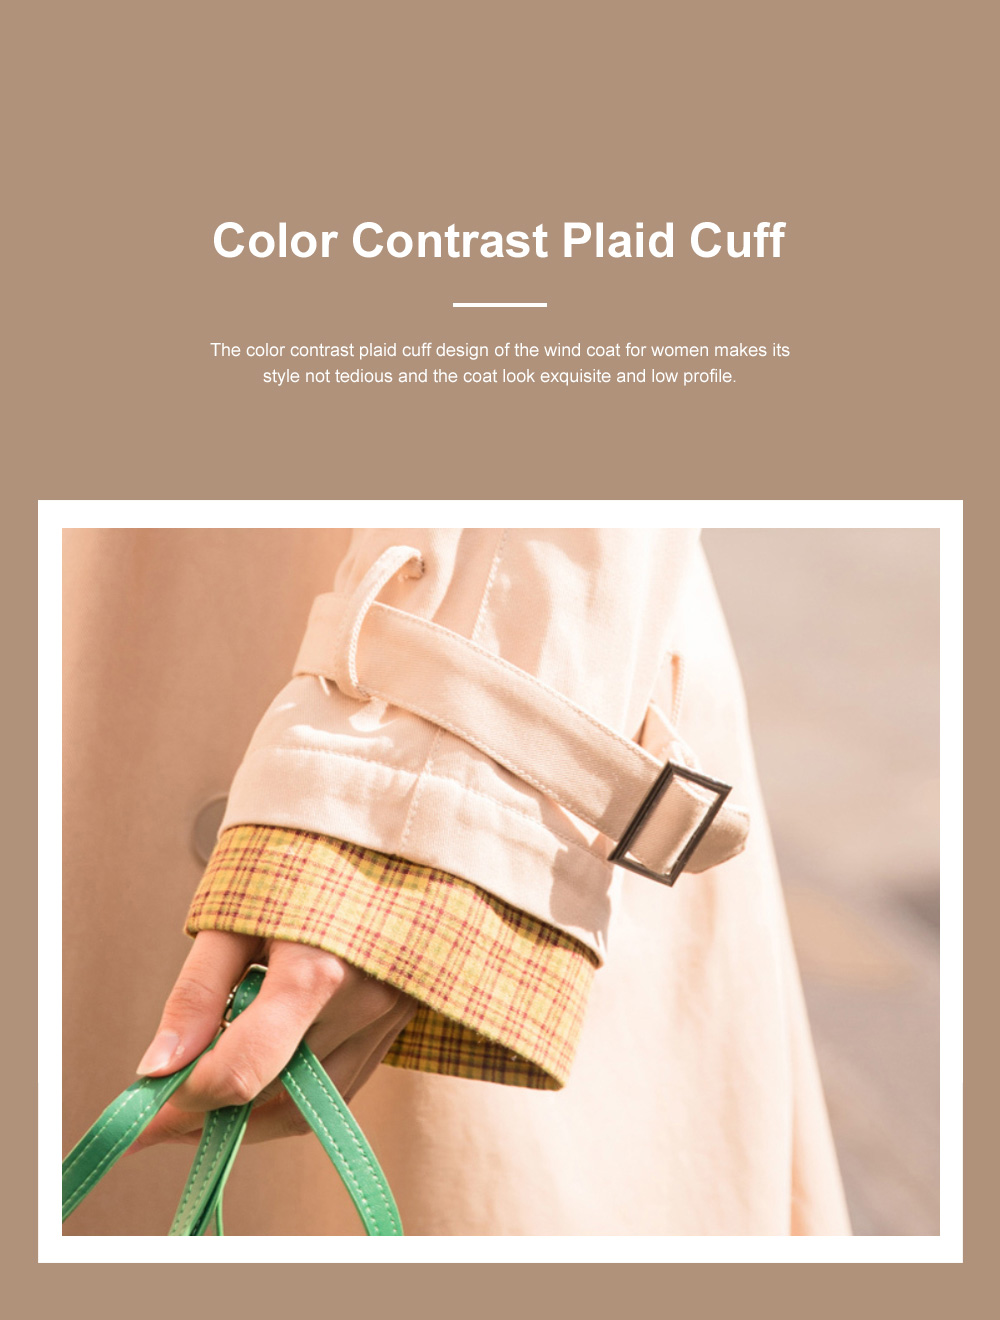 Color Contrast Plaid Cuff Wind Coat New Style Flip Collar Dust Coat for Women Wear Loose Version Mixed Fabric Windbreaker Long Pattern Trench Coat  6